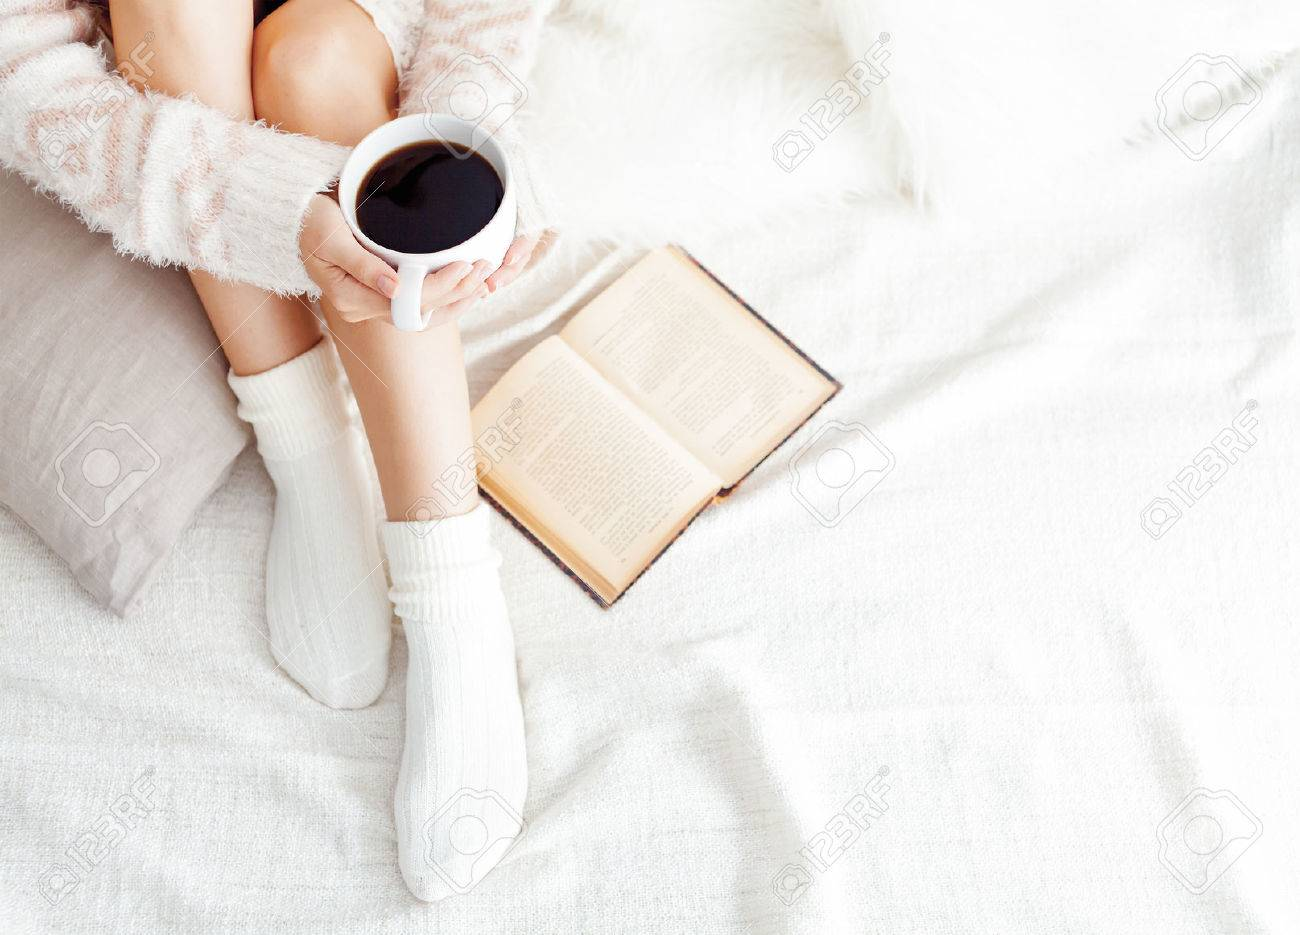 Soft photo of woman on the bed with old book and cup of coffee, top view point Stock Photo - 49156360